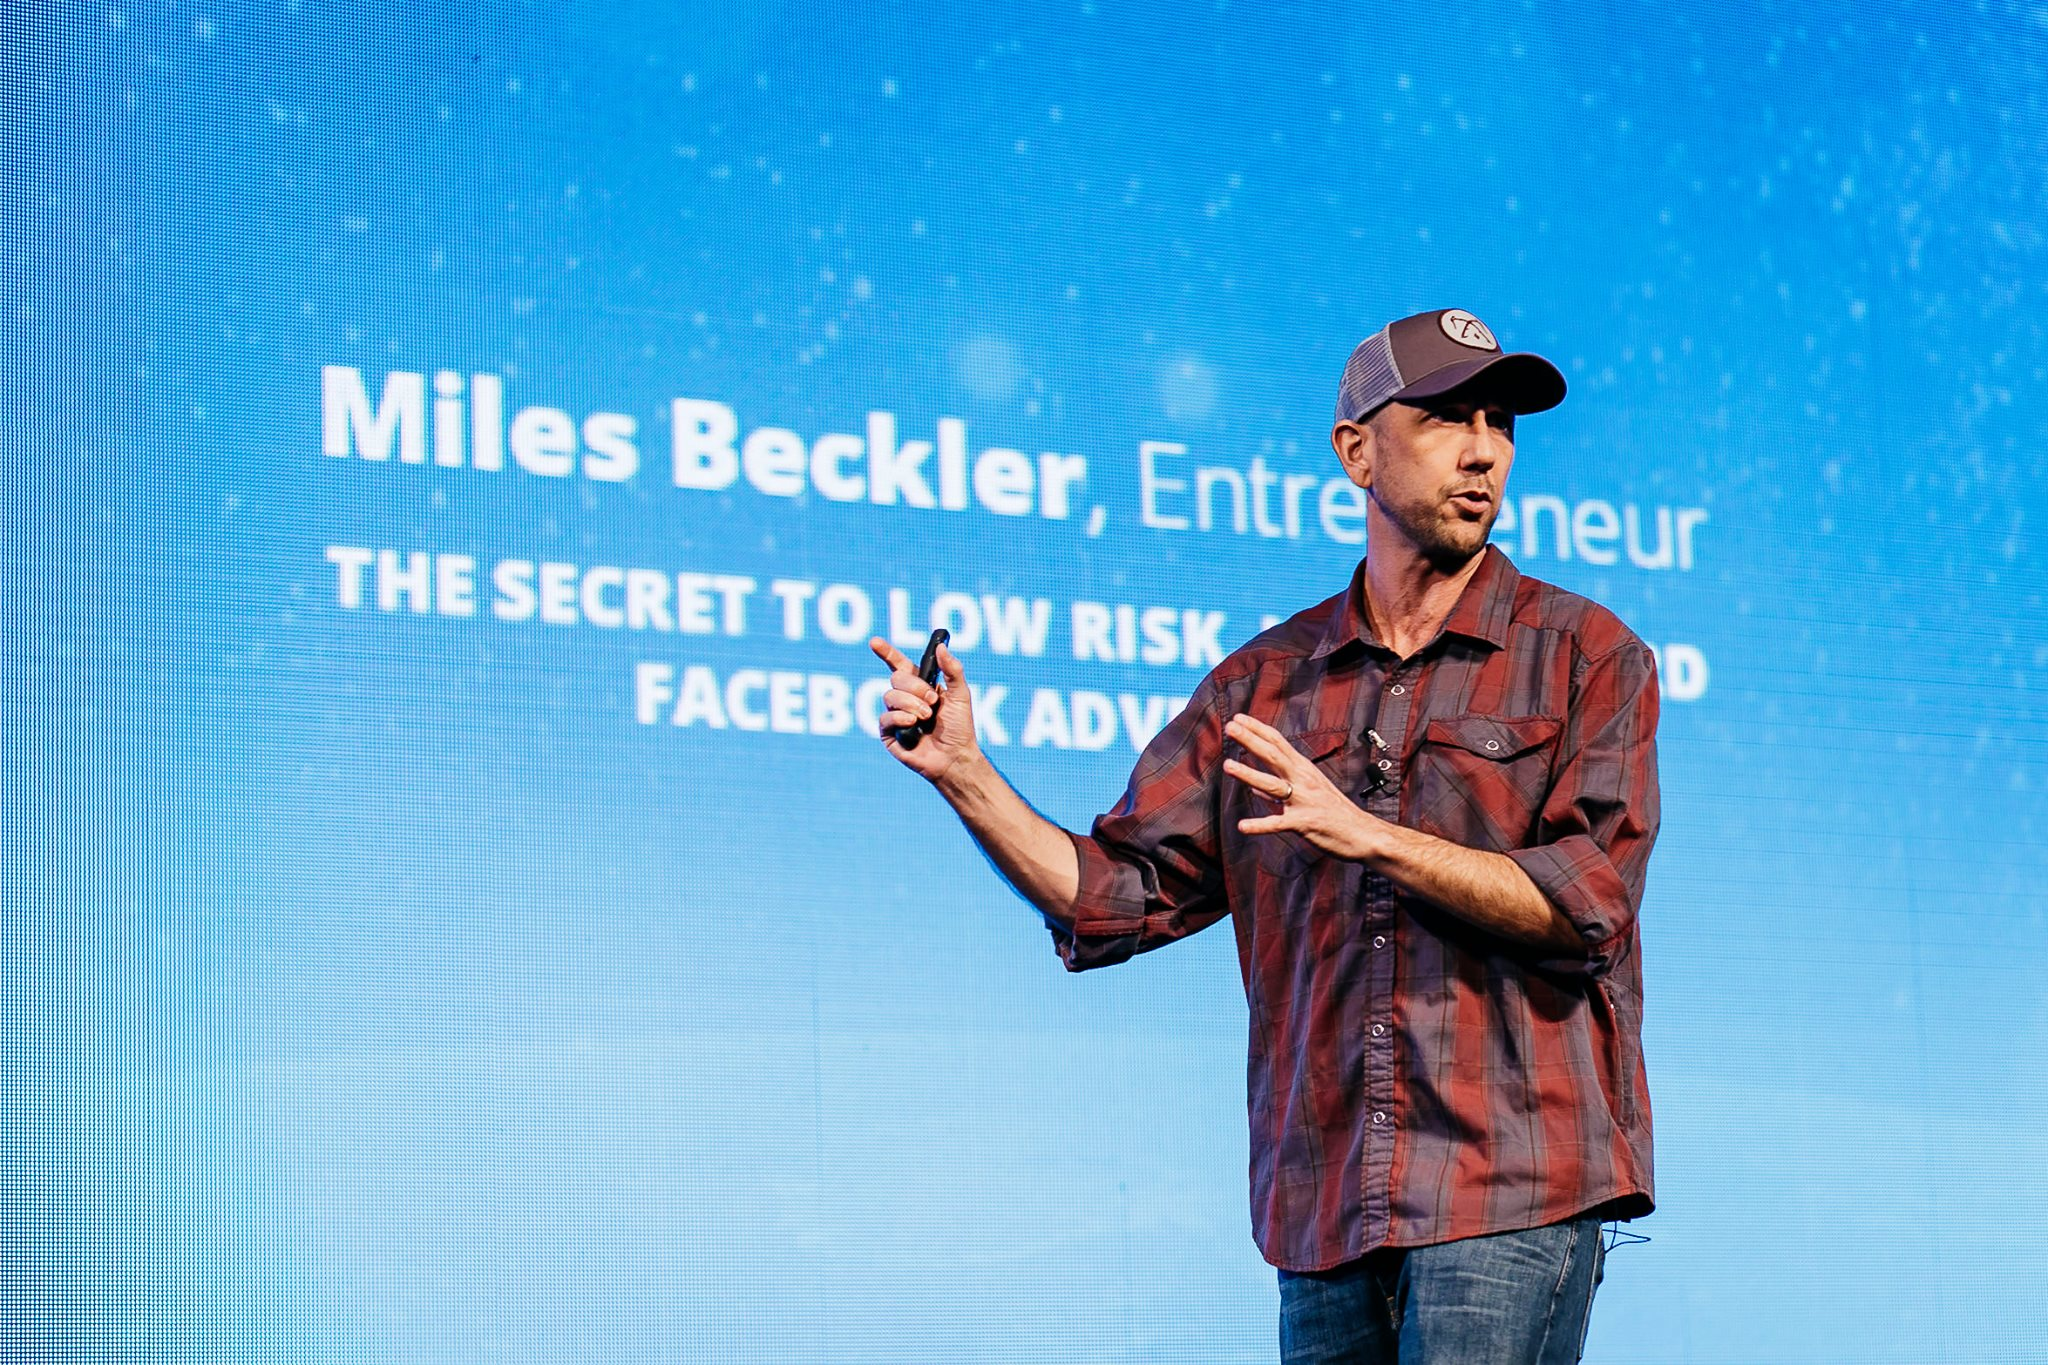 Who is Miles Beckler? Image